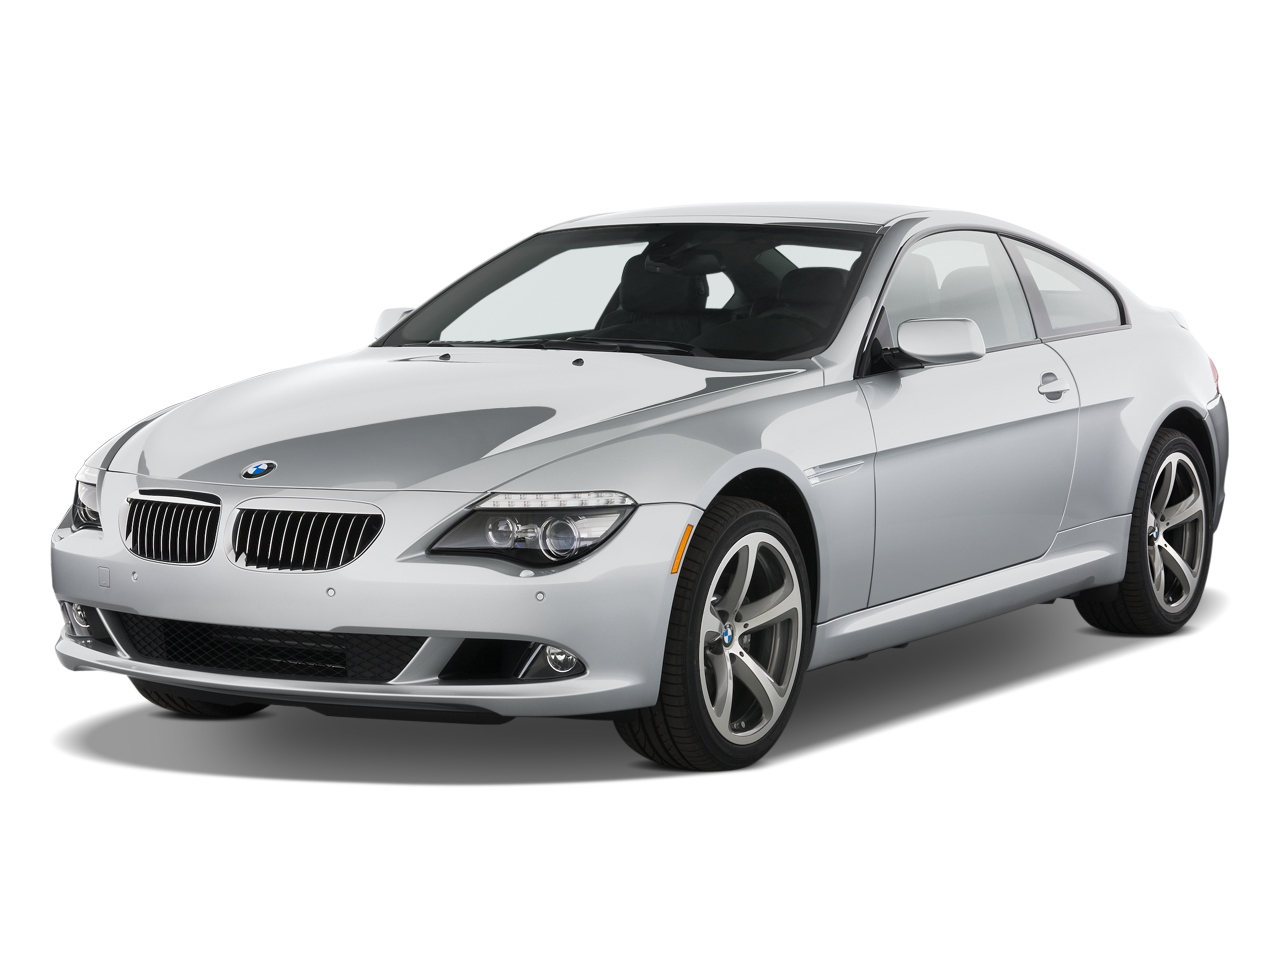 2010 Bmw 650i >> 2010 Bmw 6 Series Review Ratings Specs Prices And Photos